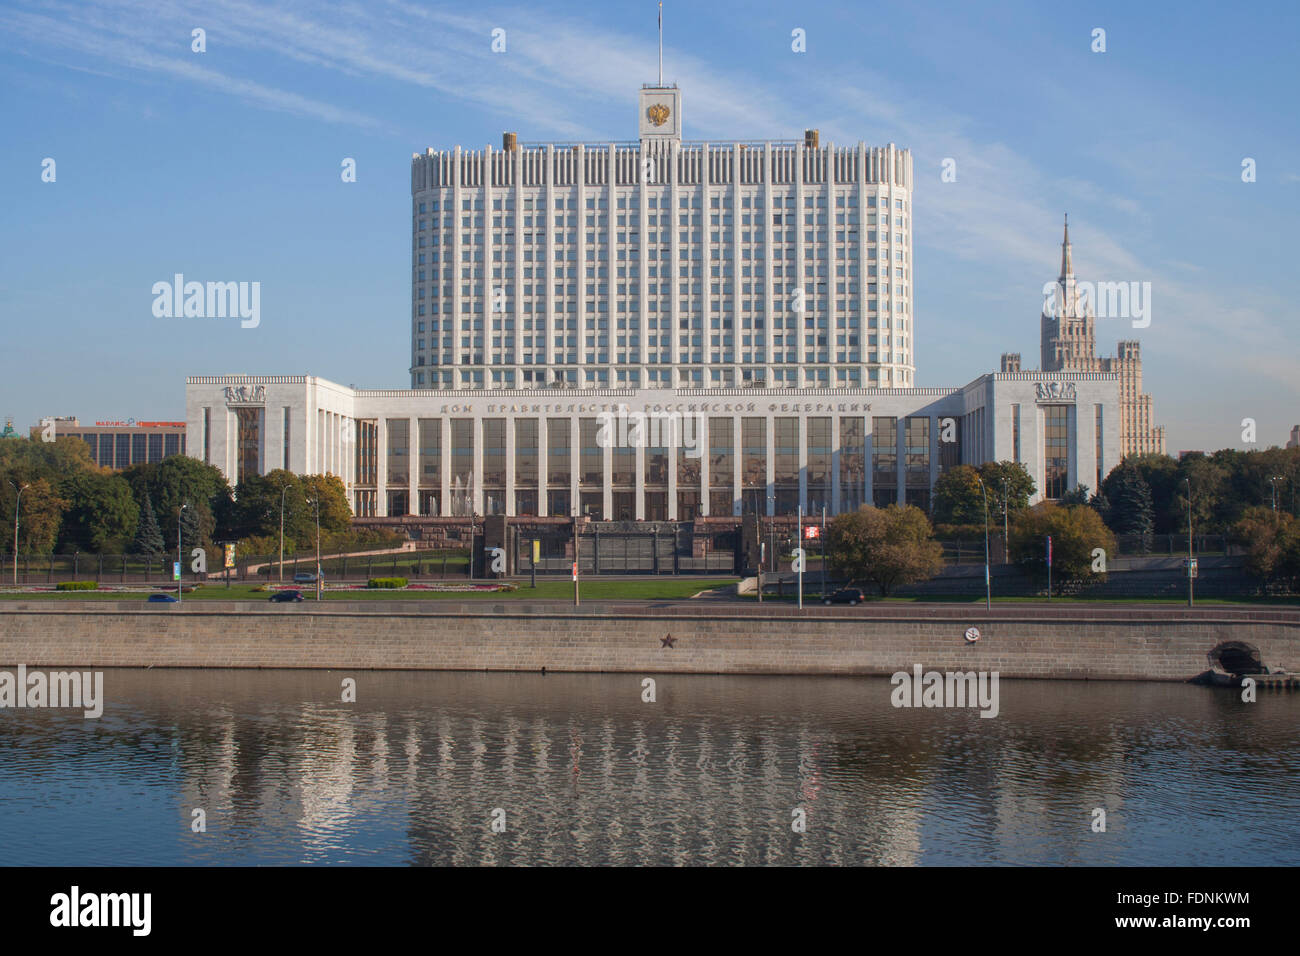 The White House or the House of the Government of the Russian Federation, Moscow, Russia Stock Photo